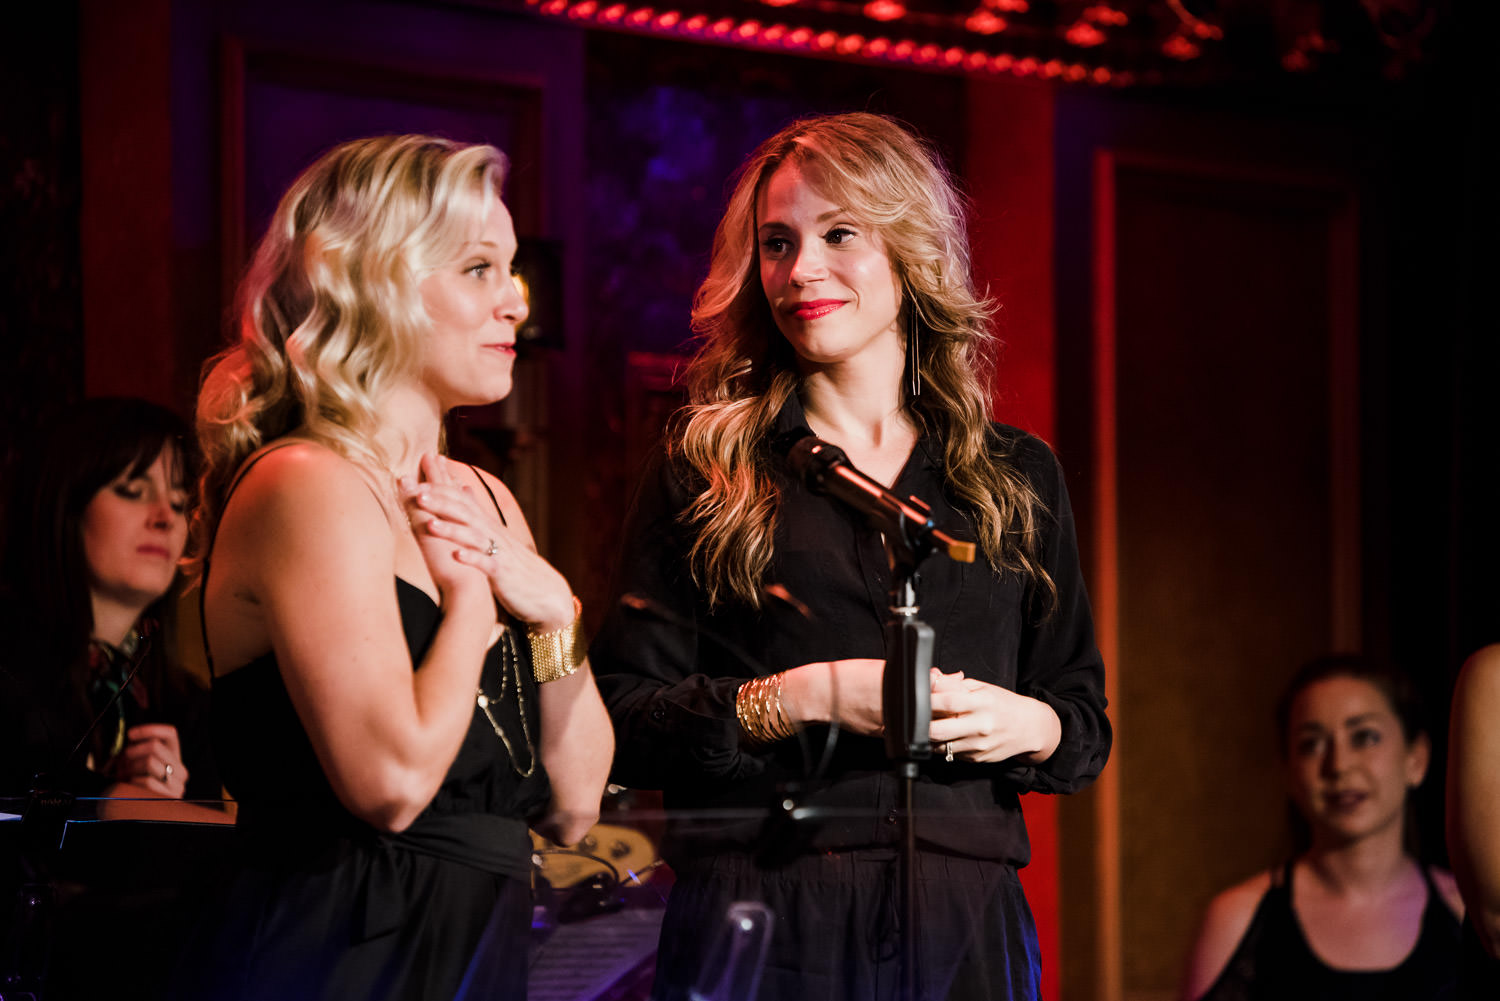 Cara Cooper and Jessica Rush speak to the crowd at 54 Below.